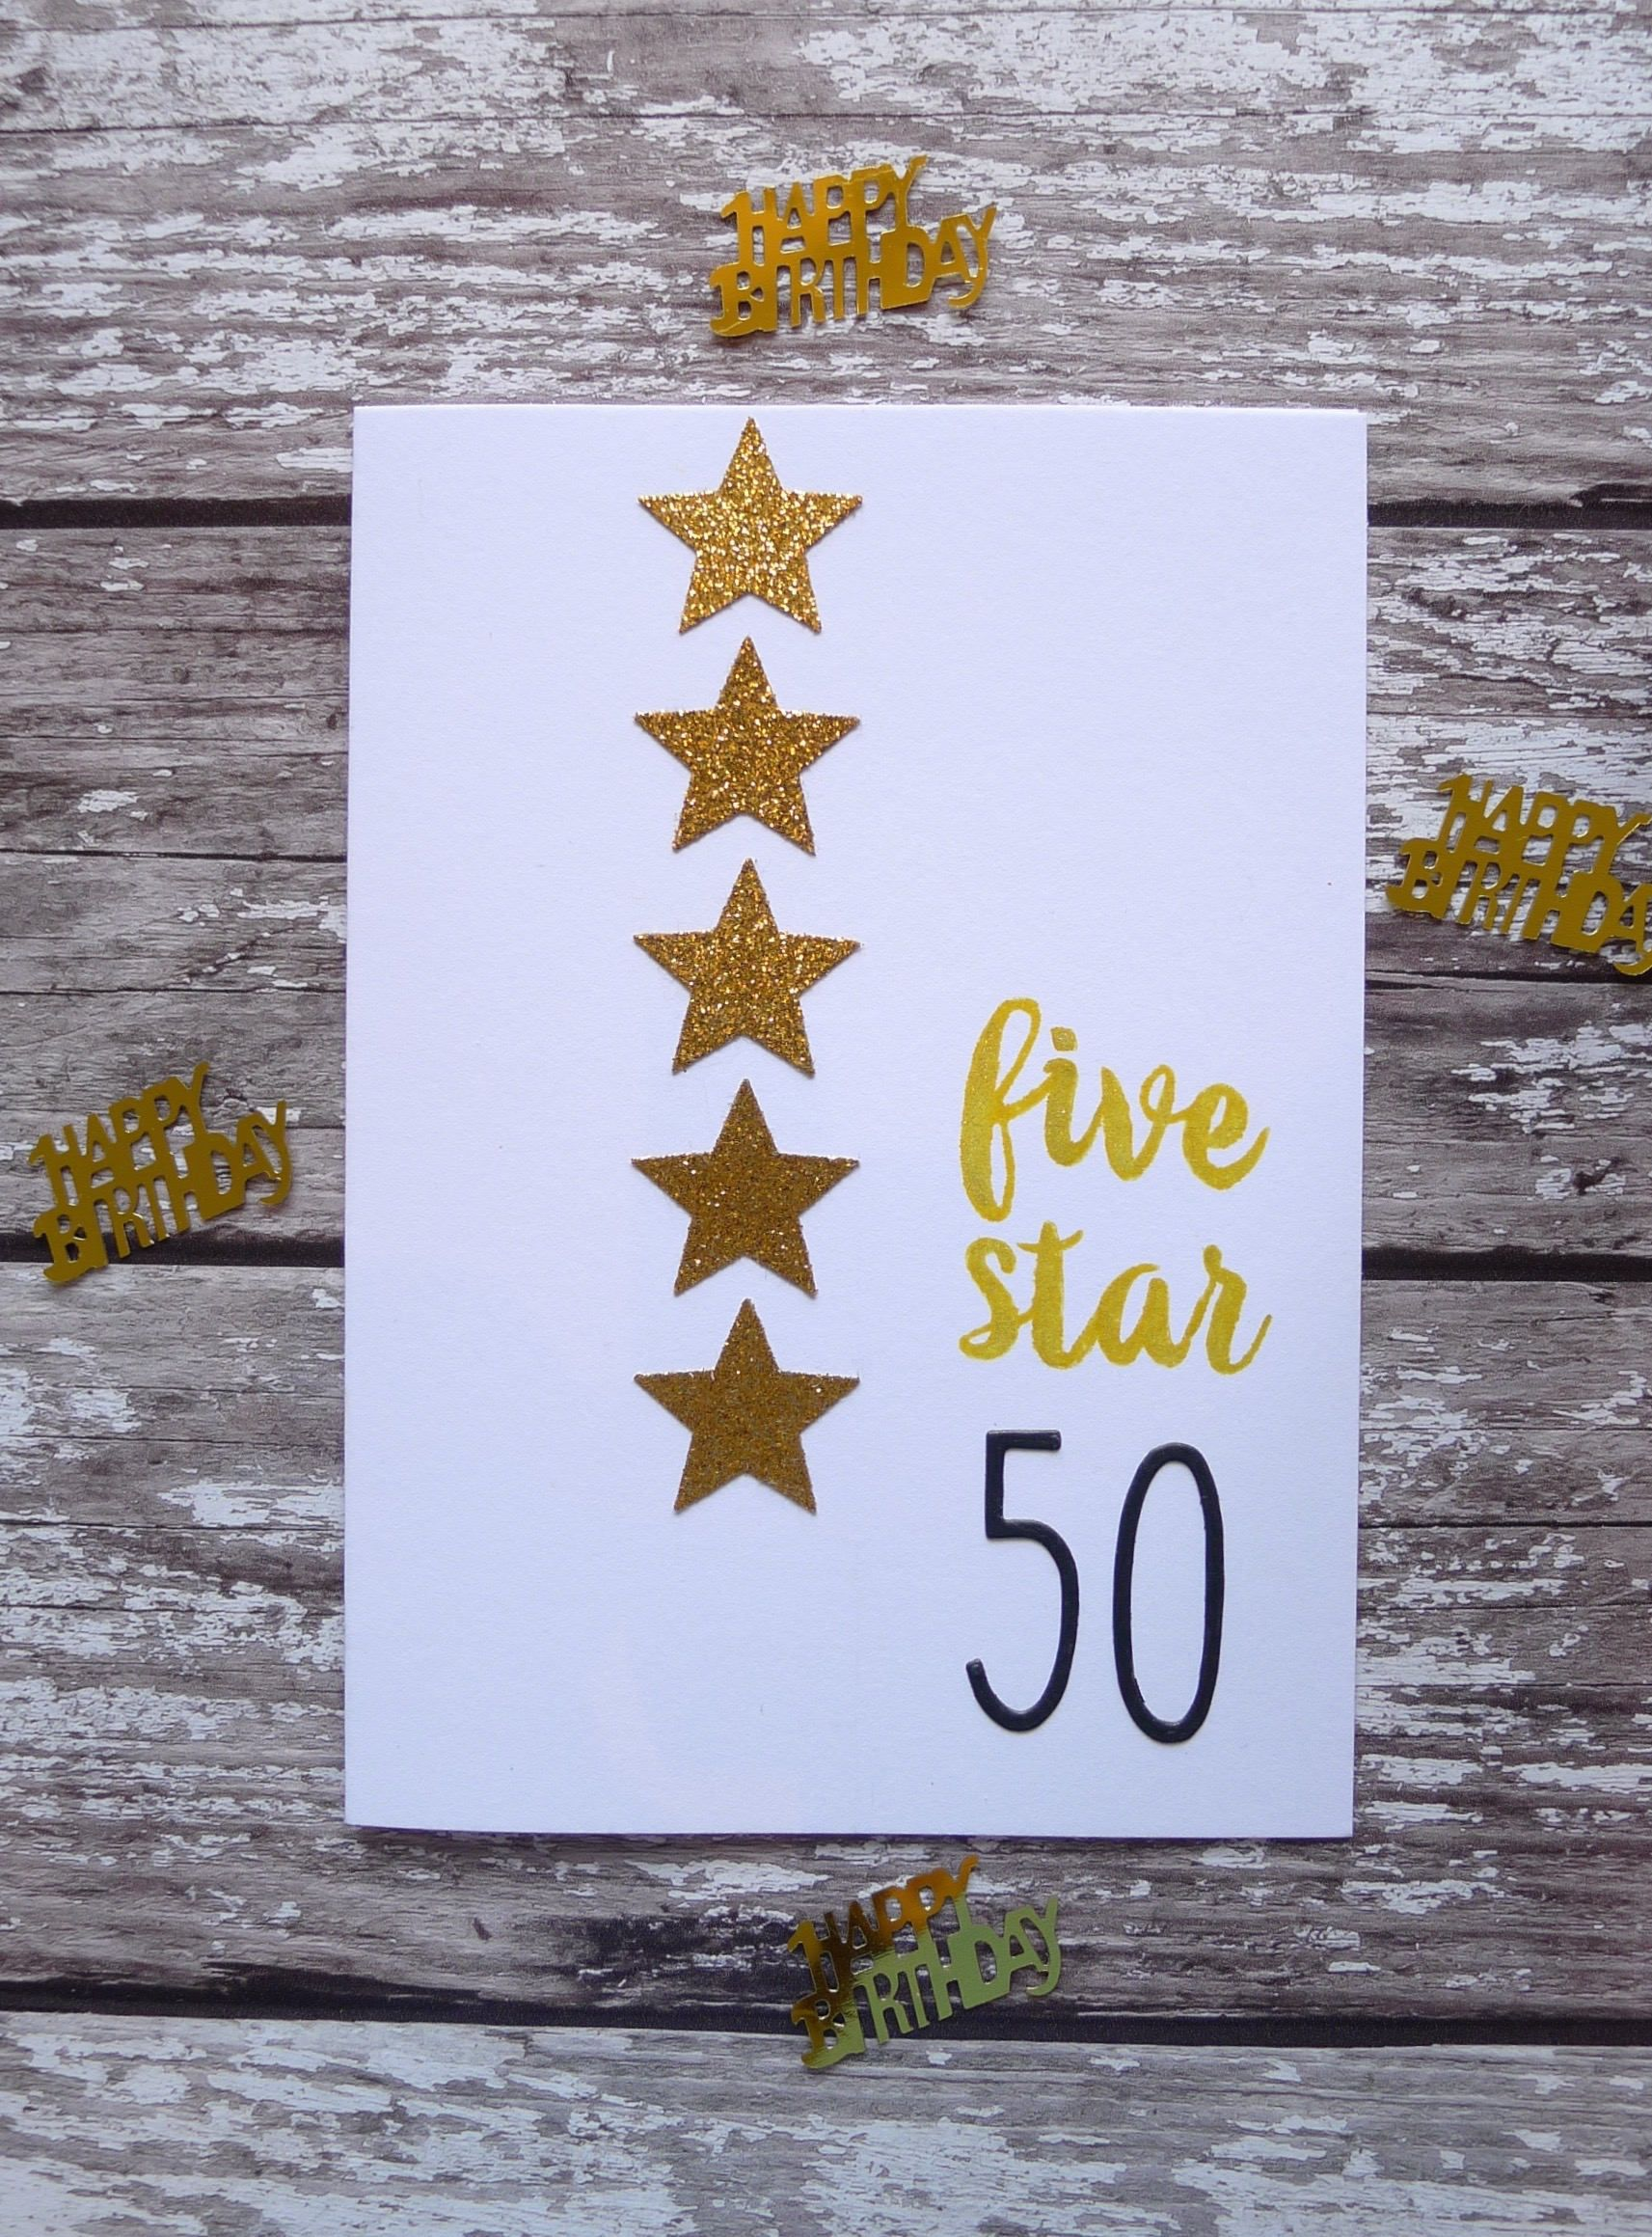 50th birthday card age birthday card five star 50 white and gold 50th birthday card age birthday card five star 50 white and gold sparkling birthday card for those turning 50 age milestone birthday card kristyandbryce Image collections